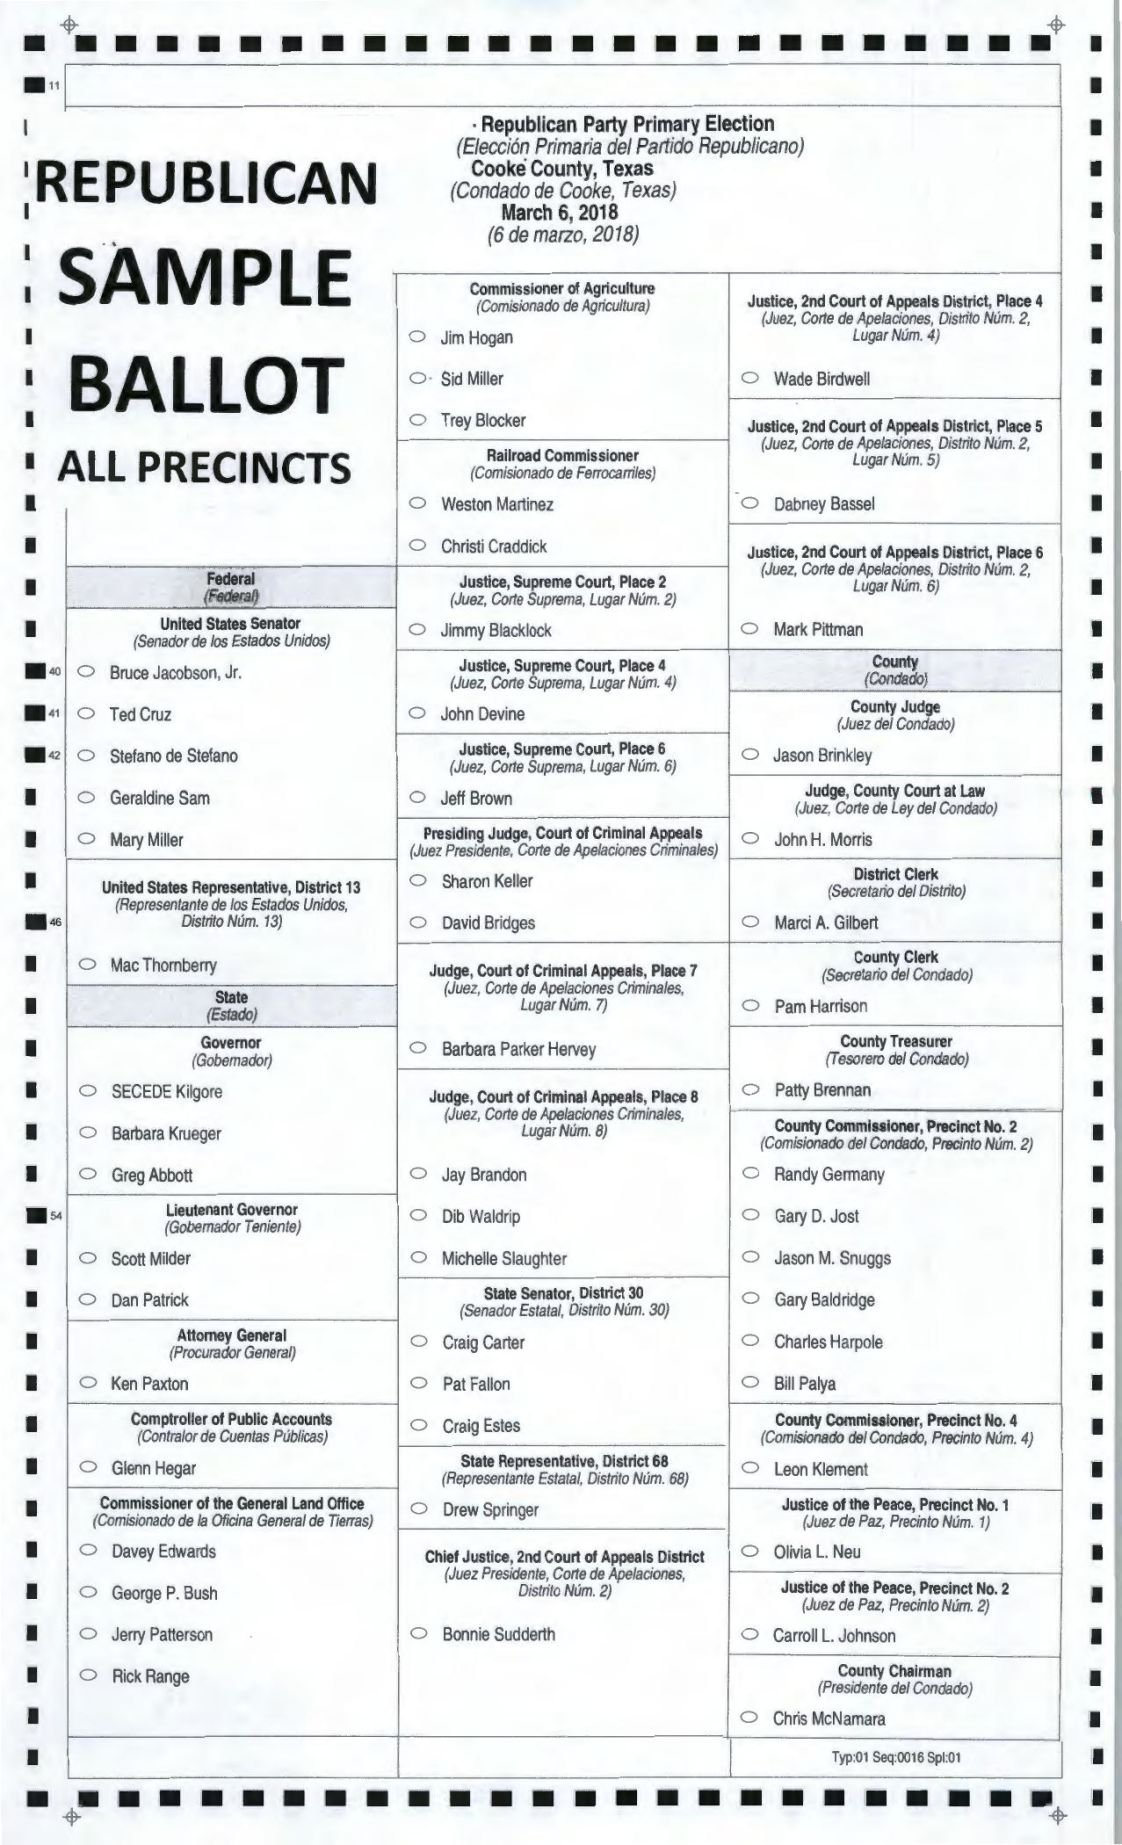 Democratic sample ballot for texas primary.